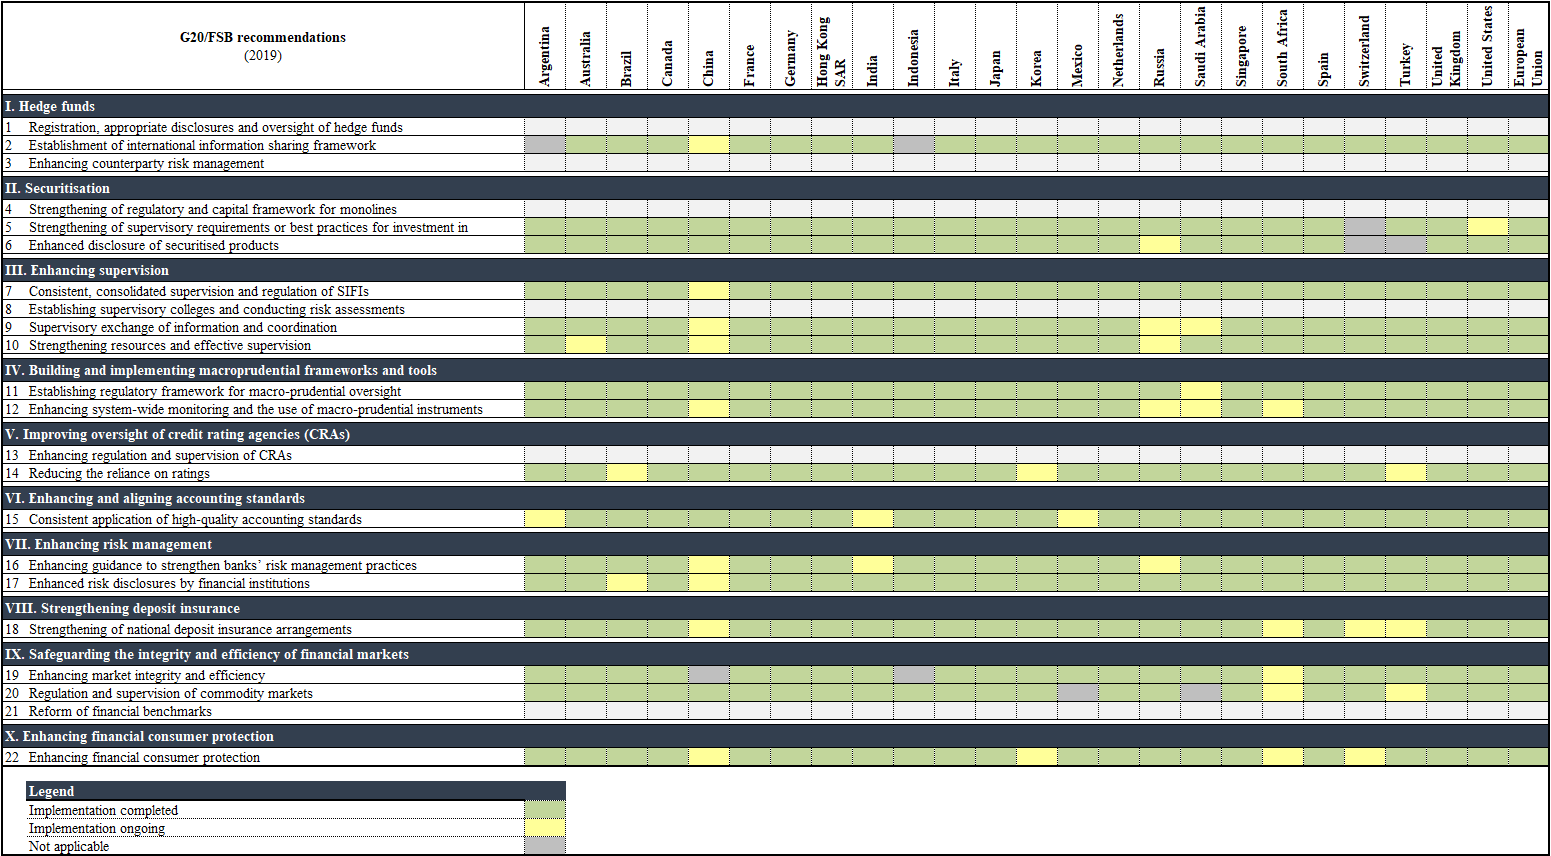 Overview of the Reported Implementation Status